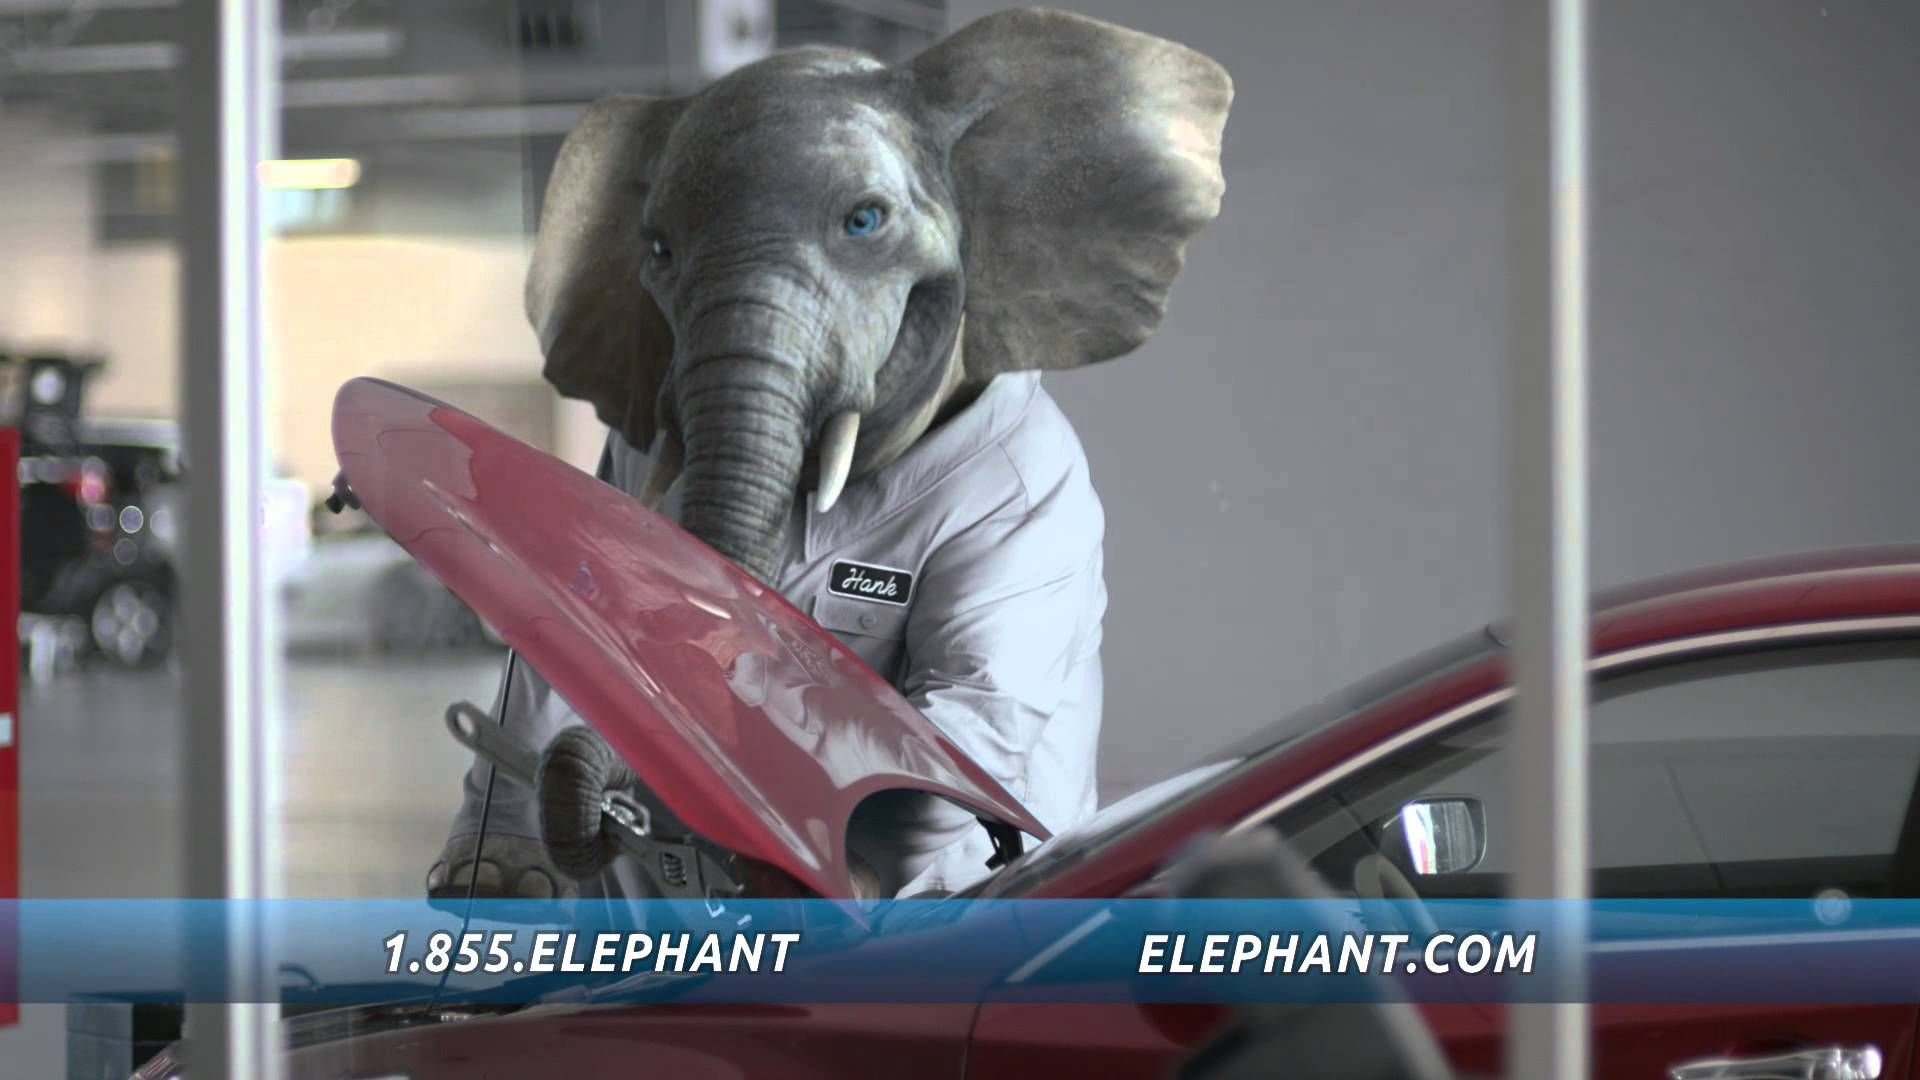 Elephant Auto Insurance Quote Classy This Elephant Insurance Commercial Was Shot In The Allsteel Dallas . 2017